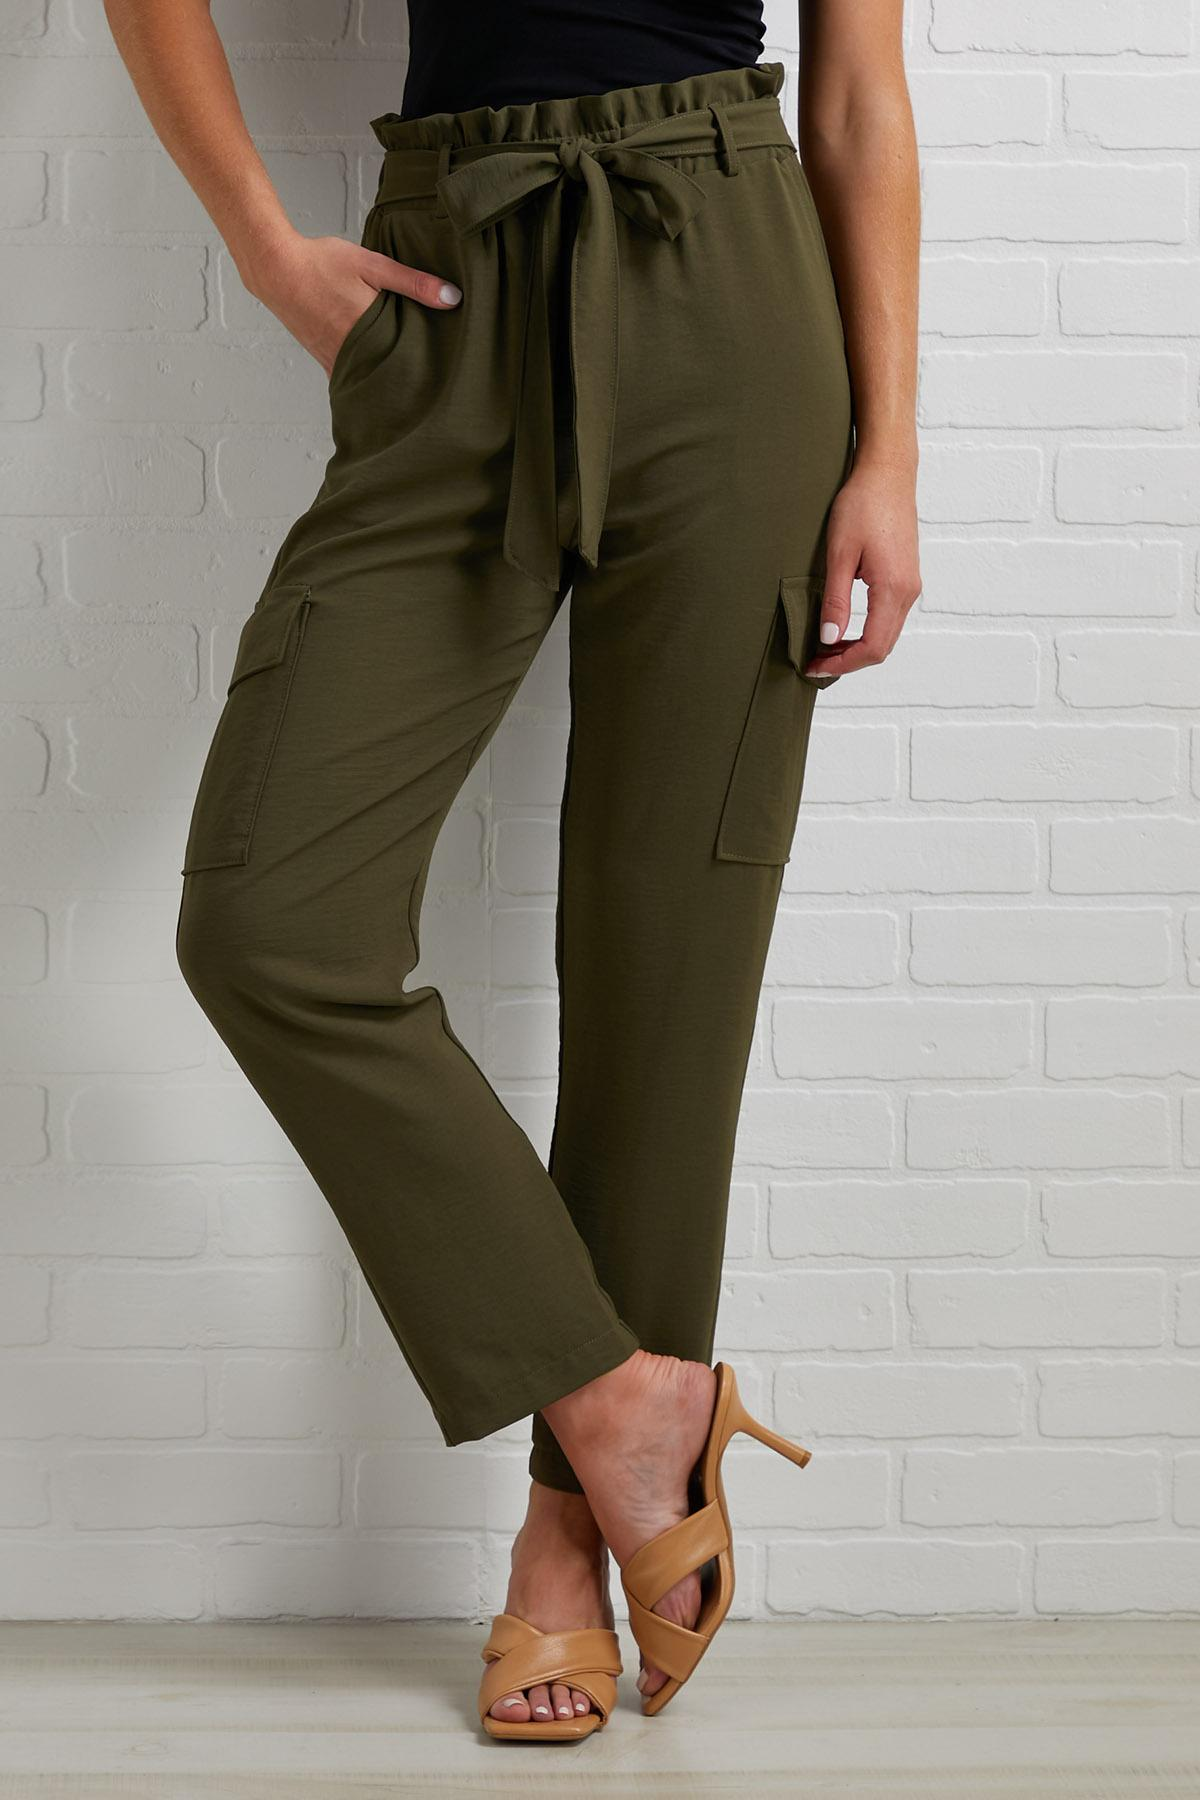 Cool And Collected Pants